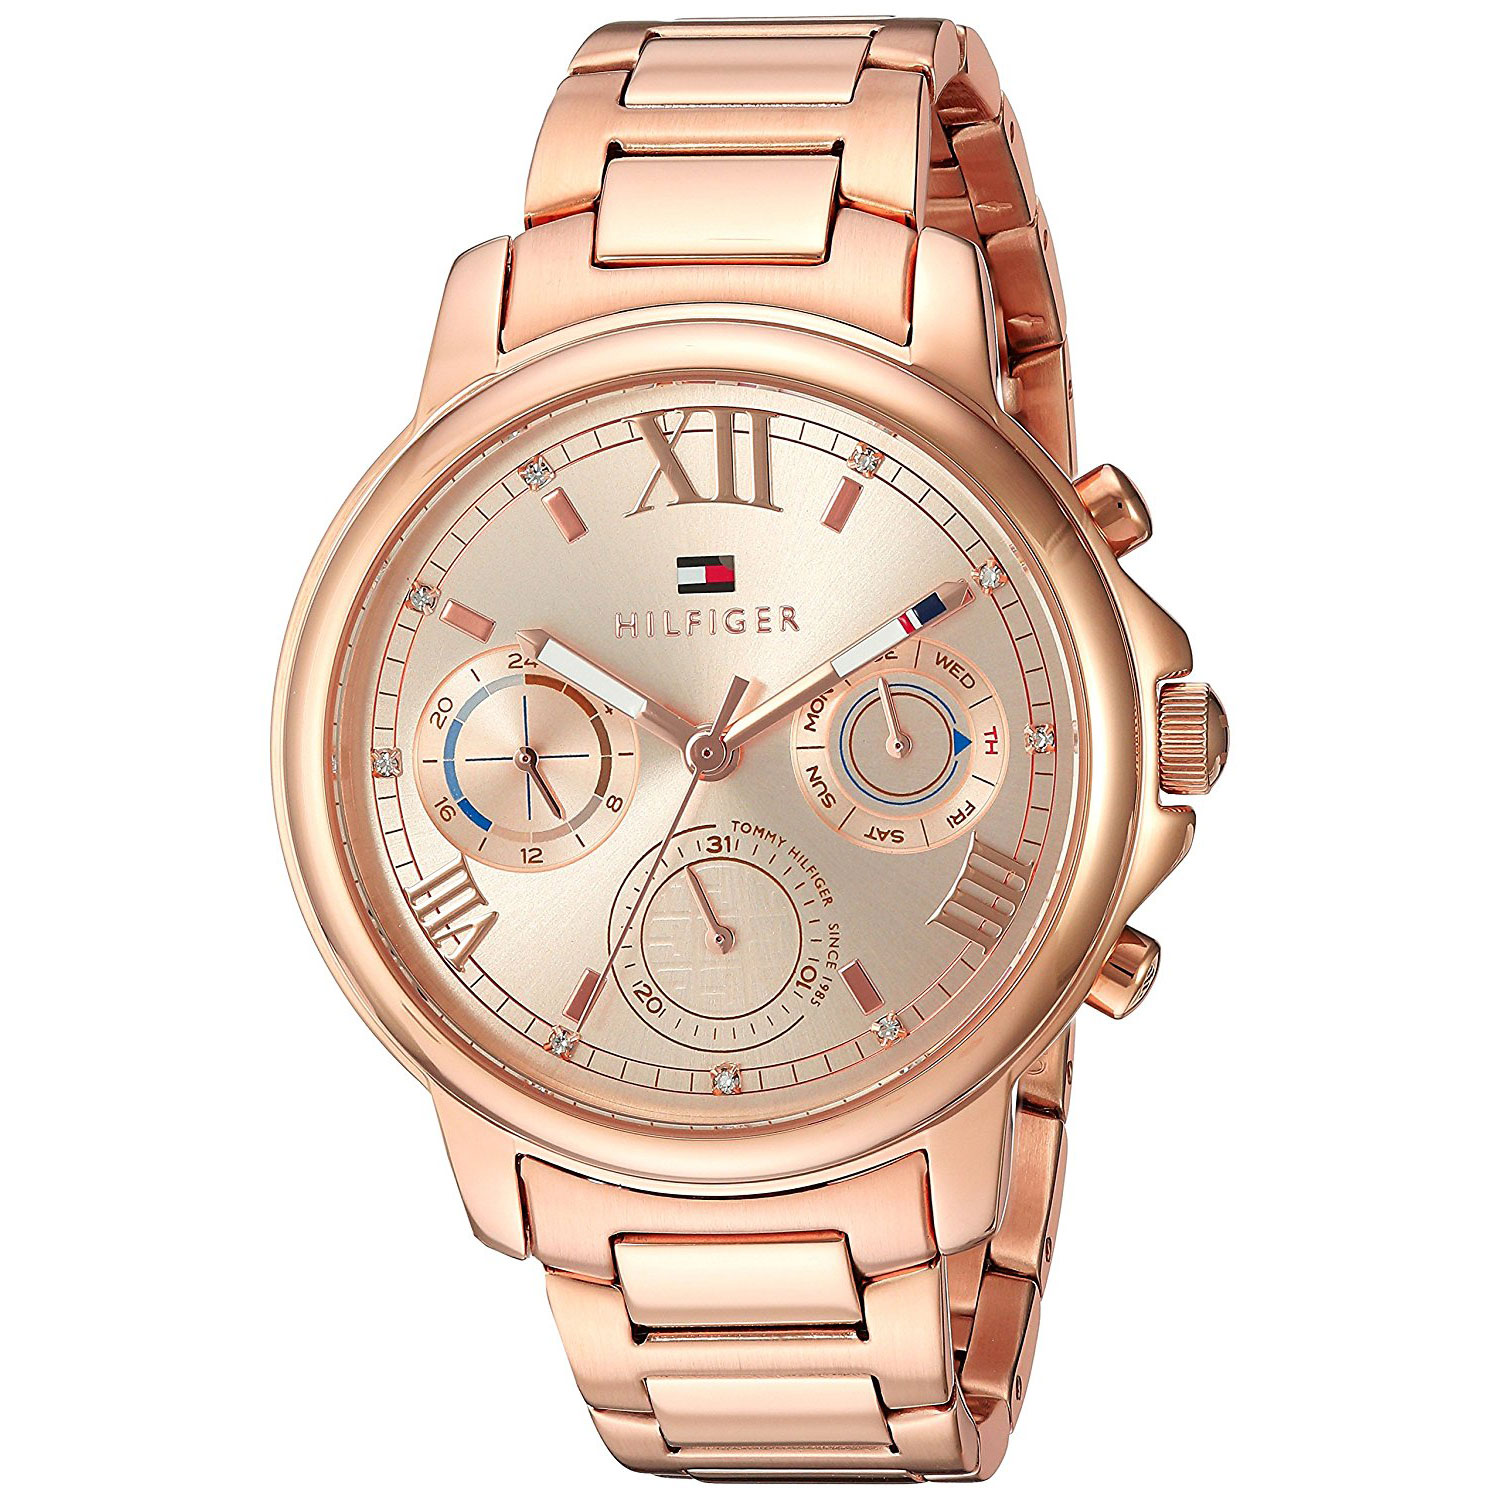 8916d0b20 Tommy Hilfiger watch with rose gold stainless steel 1781743. Tap to expand